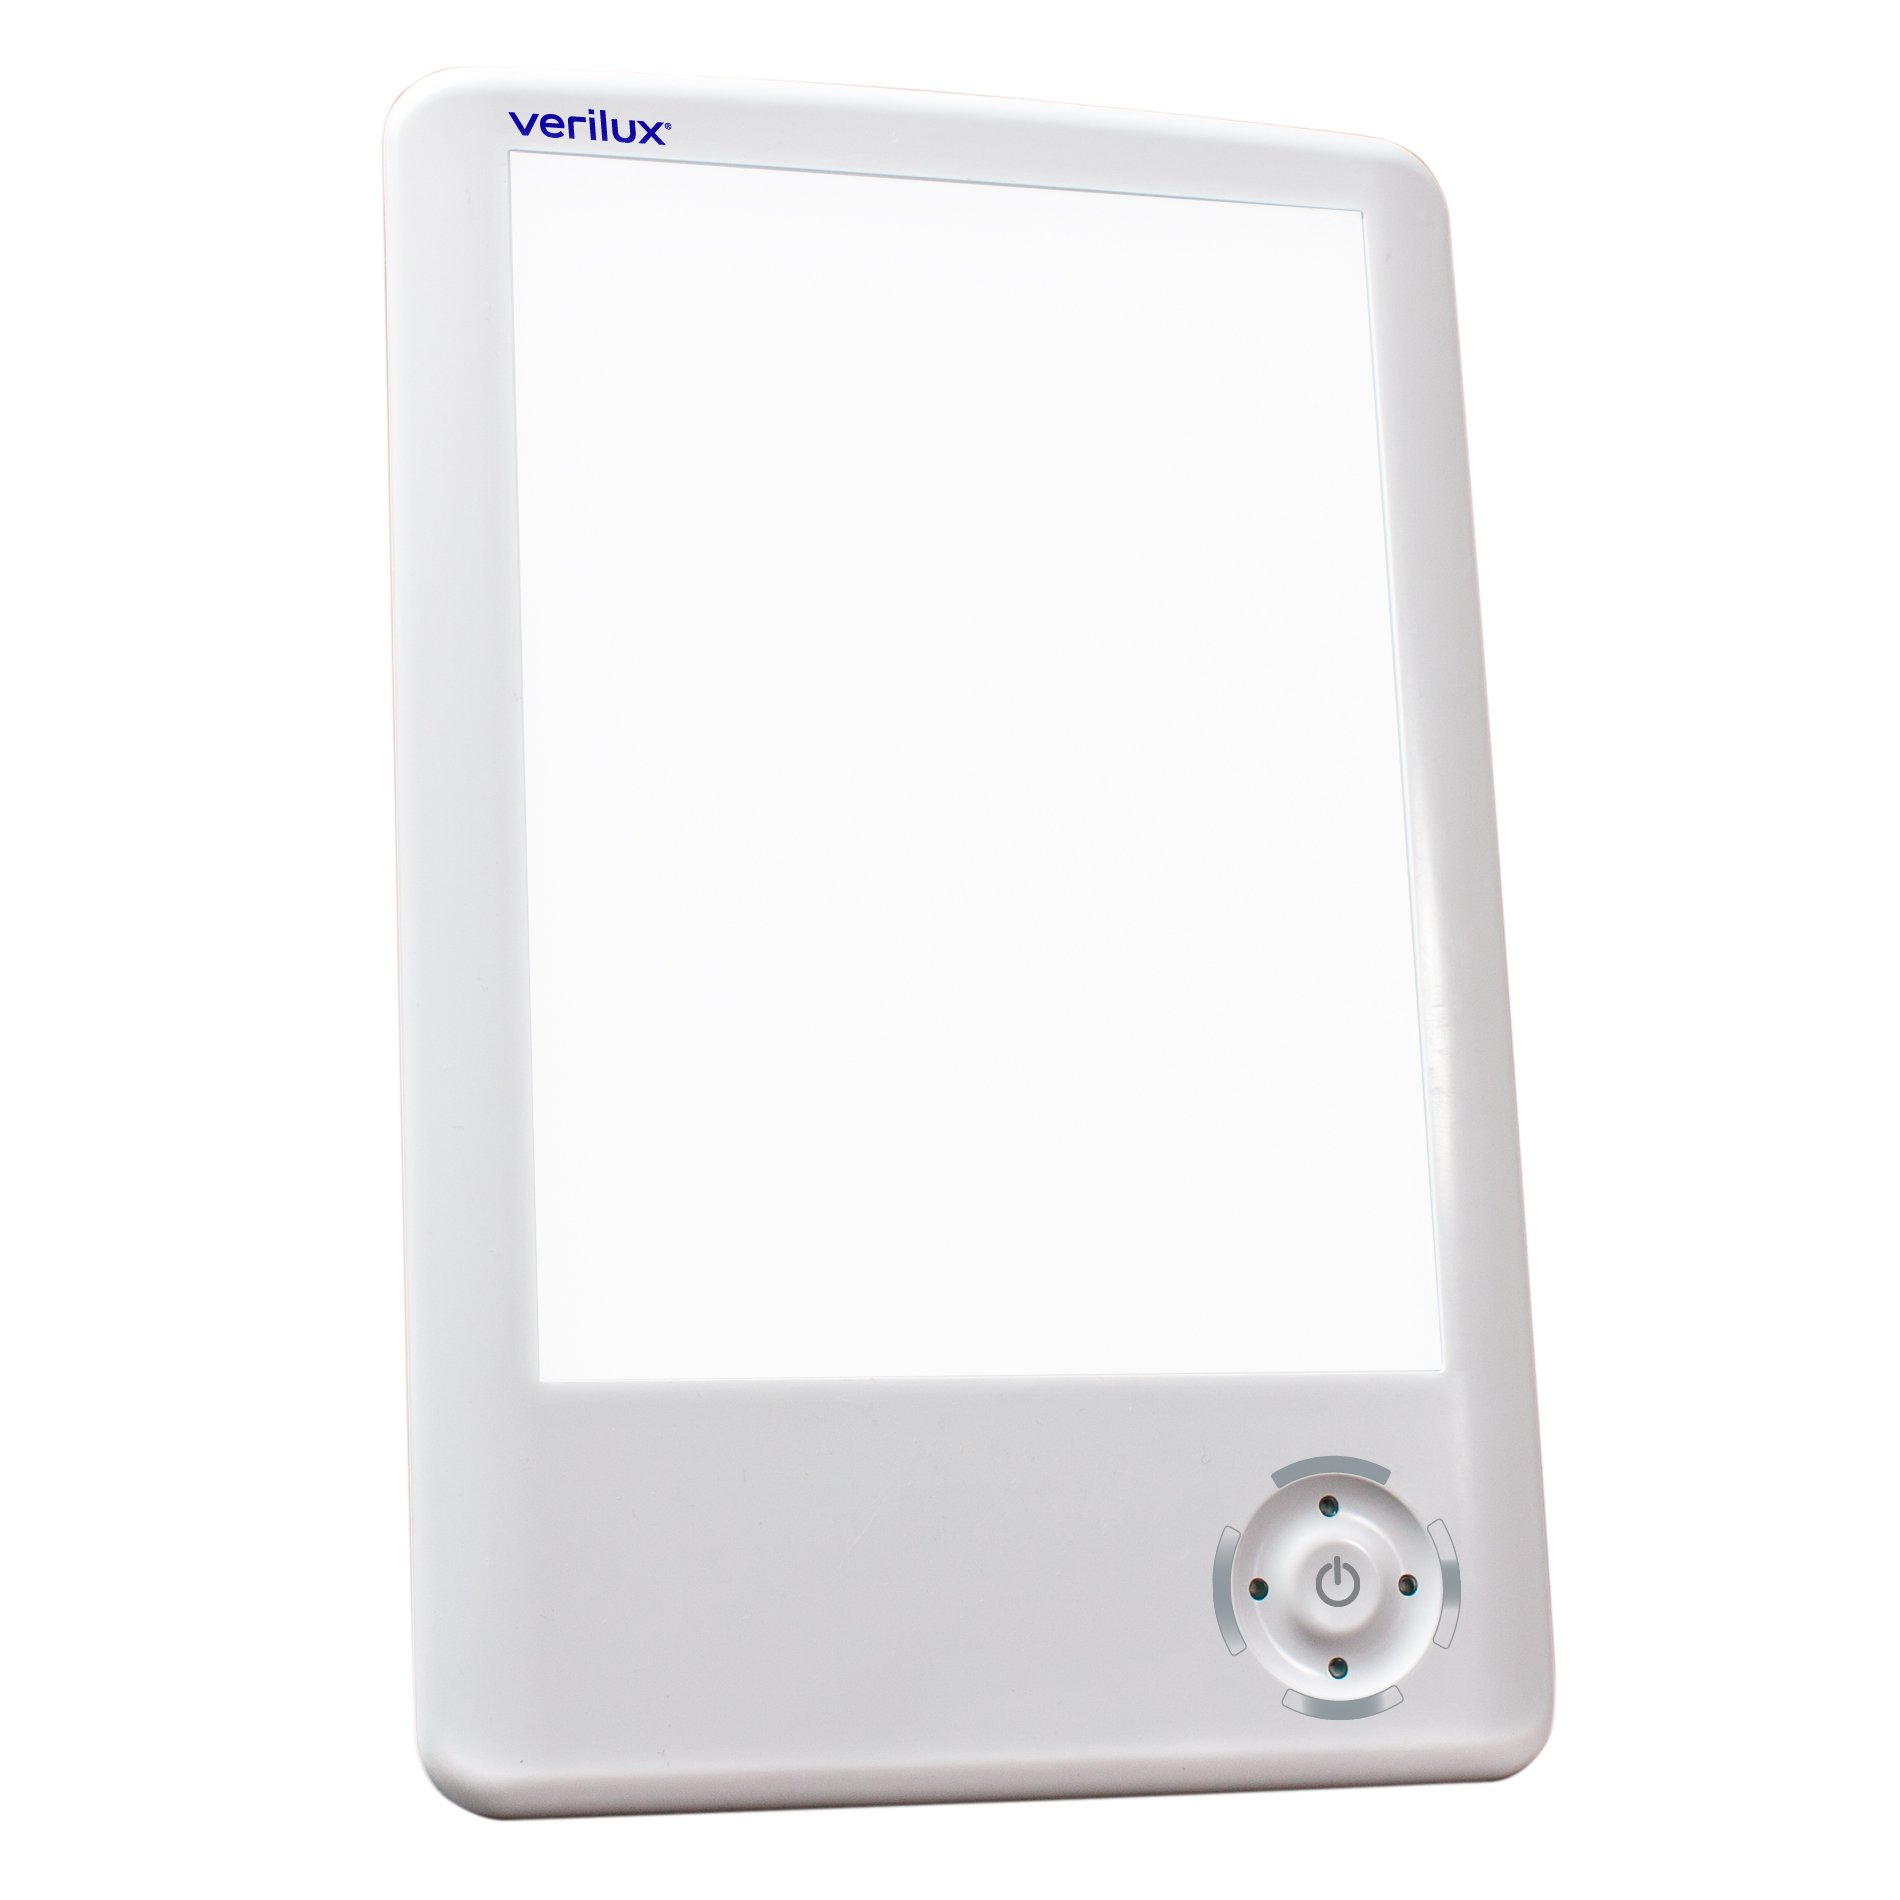 Verilux HappyLight Touch 10,000 Lux LED Bright White Light Therapy Tablet One Touch Timer Adjustable Lux Intensity